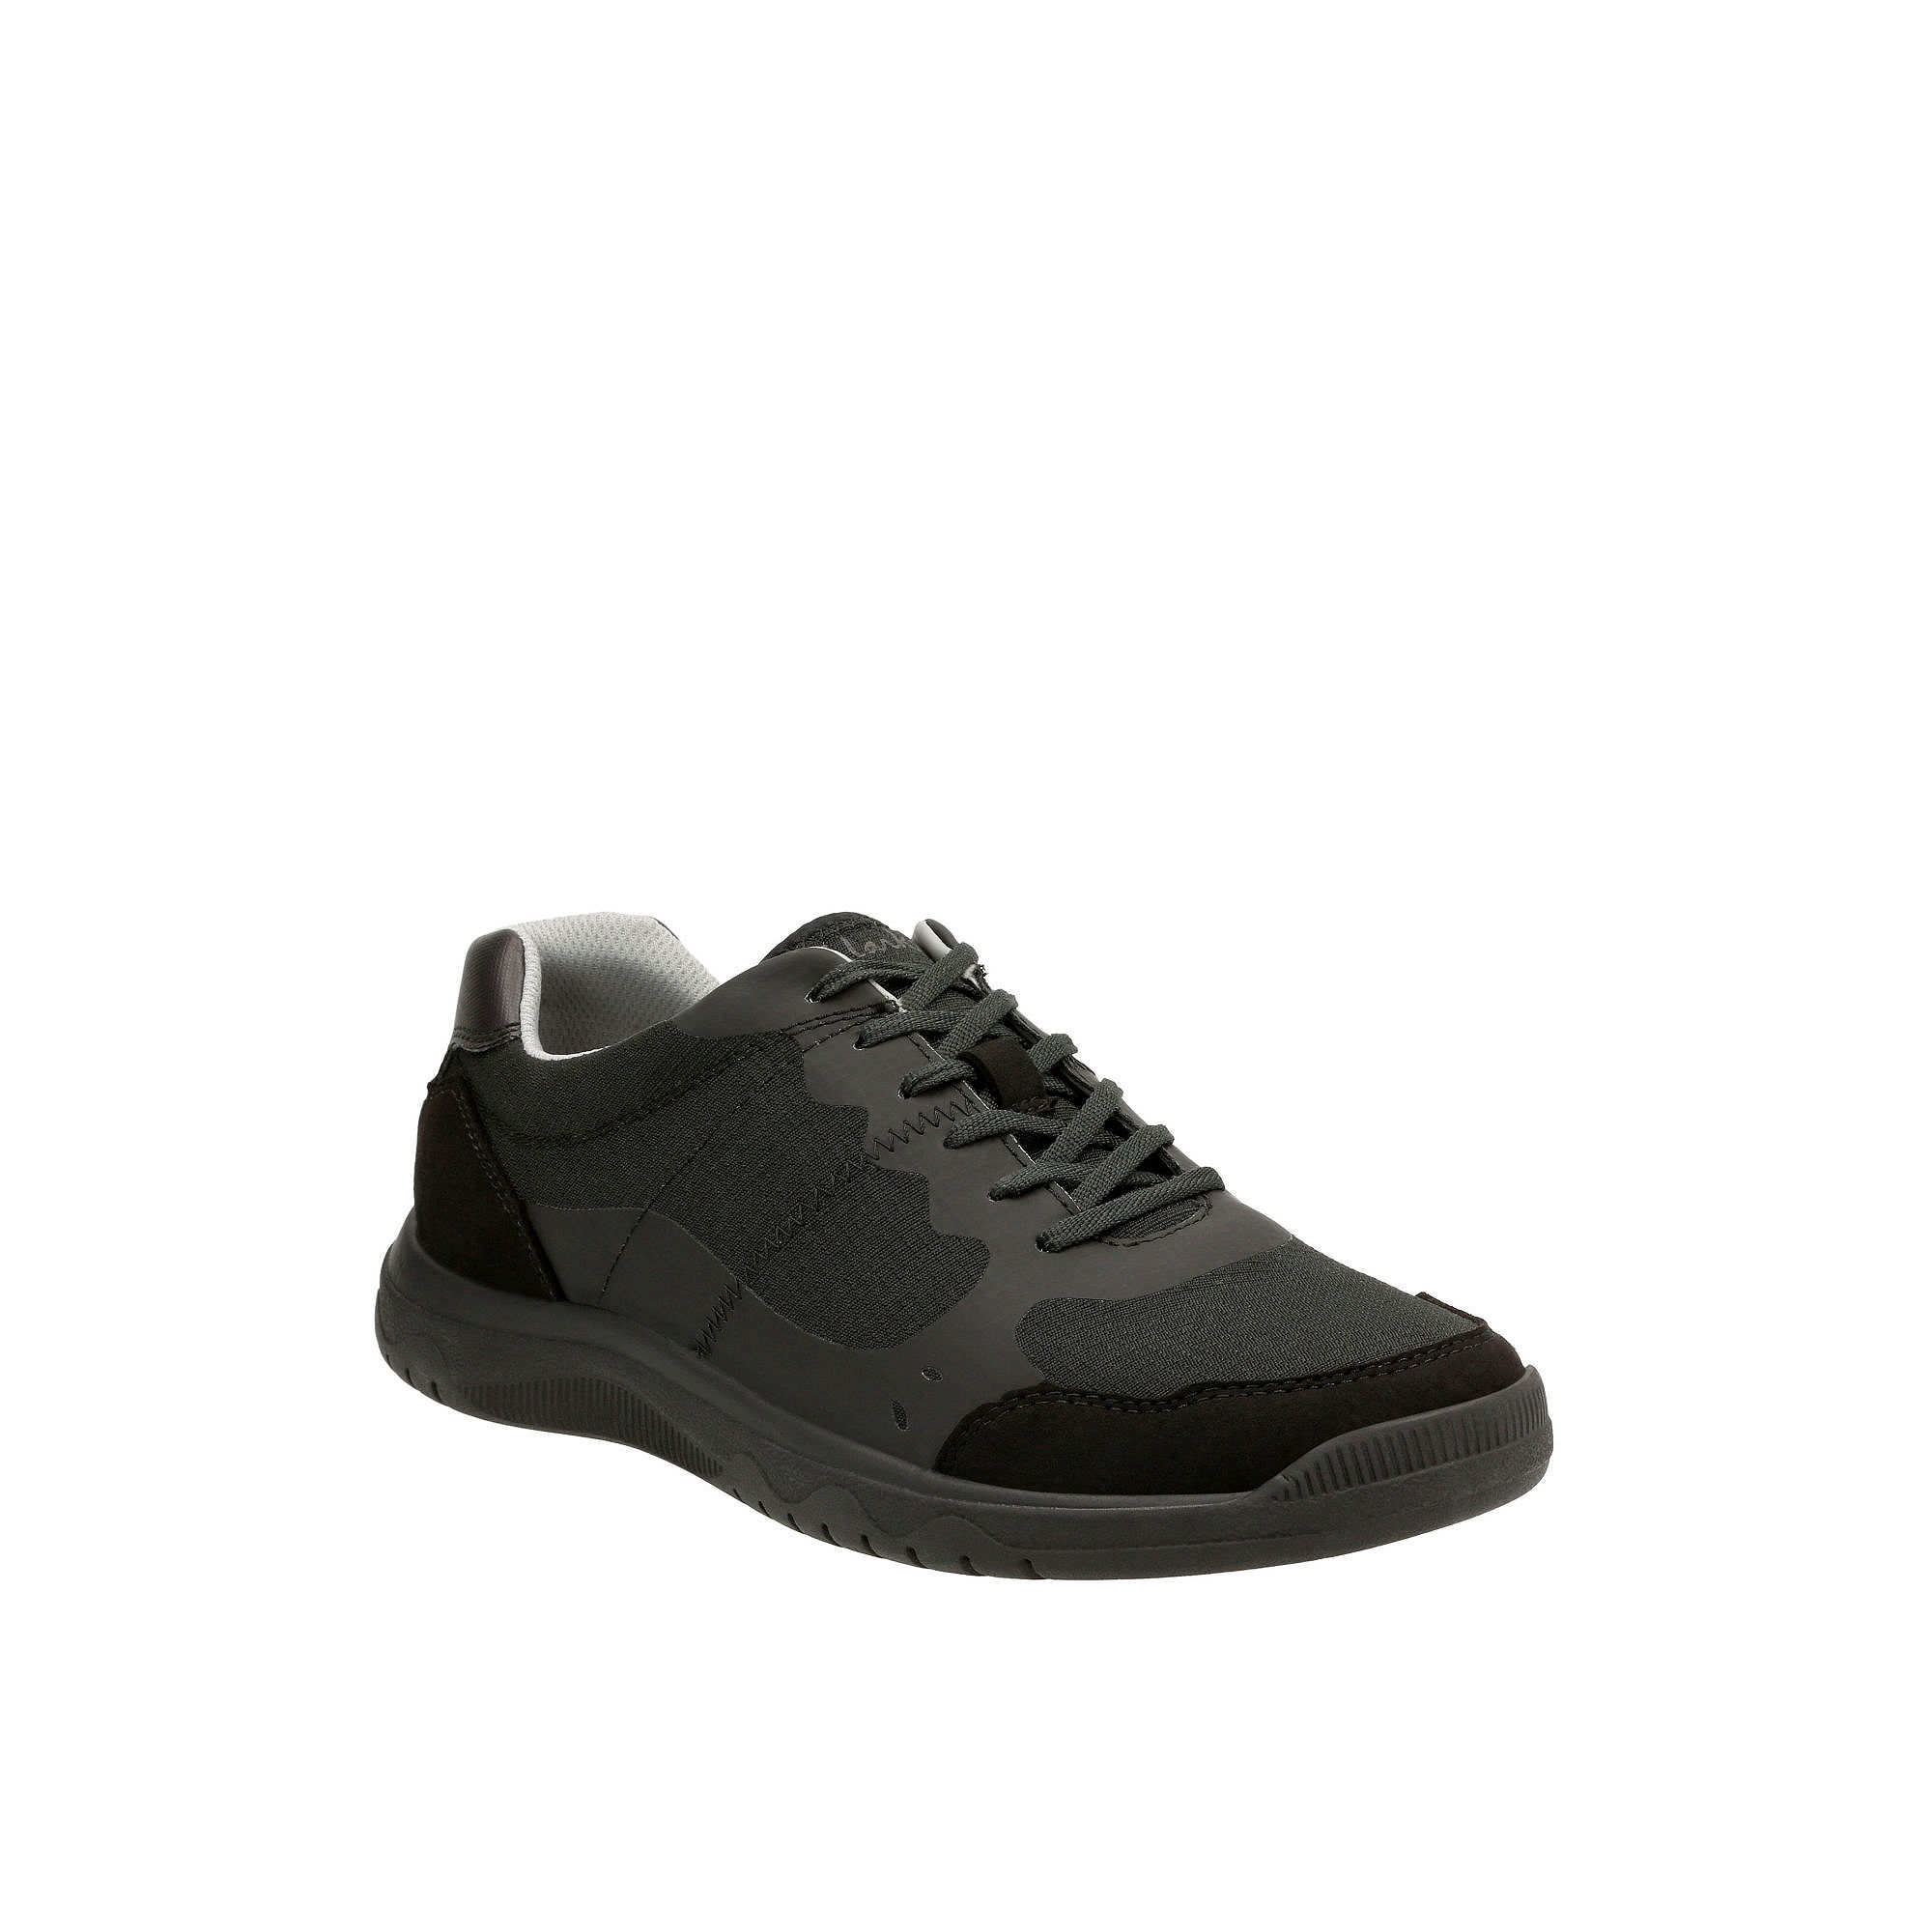 08871d414c33 UPC 889305508264 product image for Clarks Votta Edge Mens Casual Lace-Up  Shoes